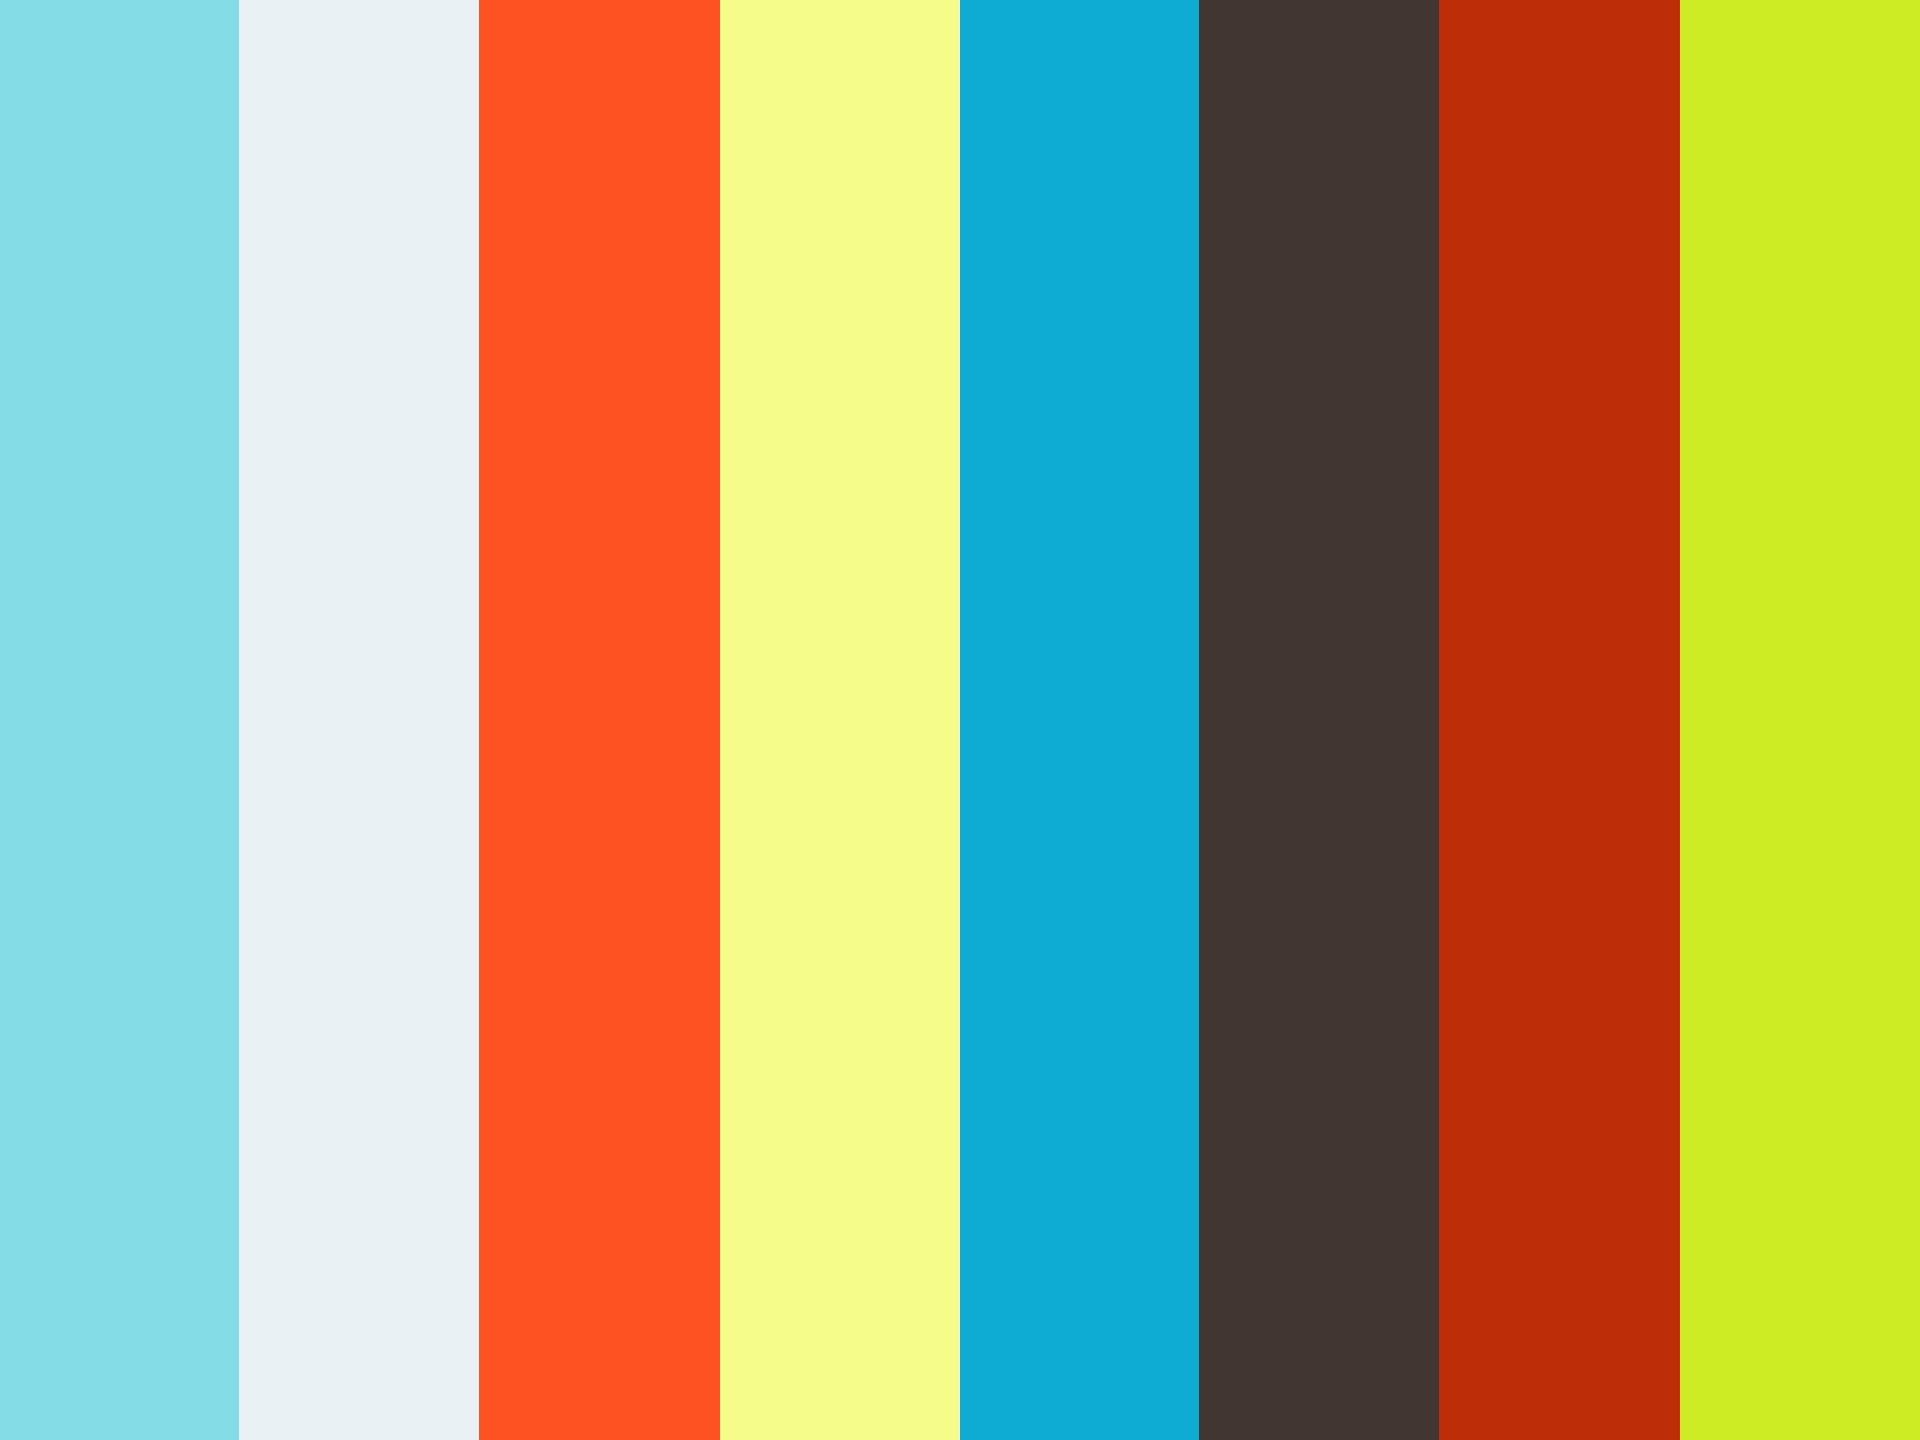 Pre- or Post-treatment Tumor Stage: Which is the Best Predictor of Outcome? 2011